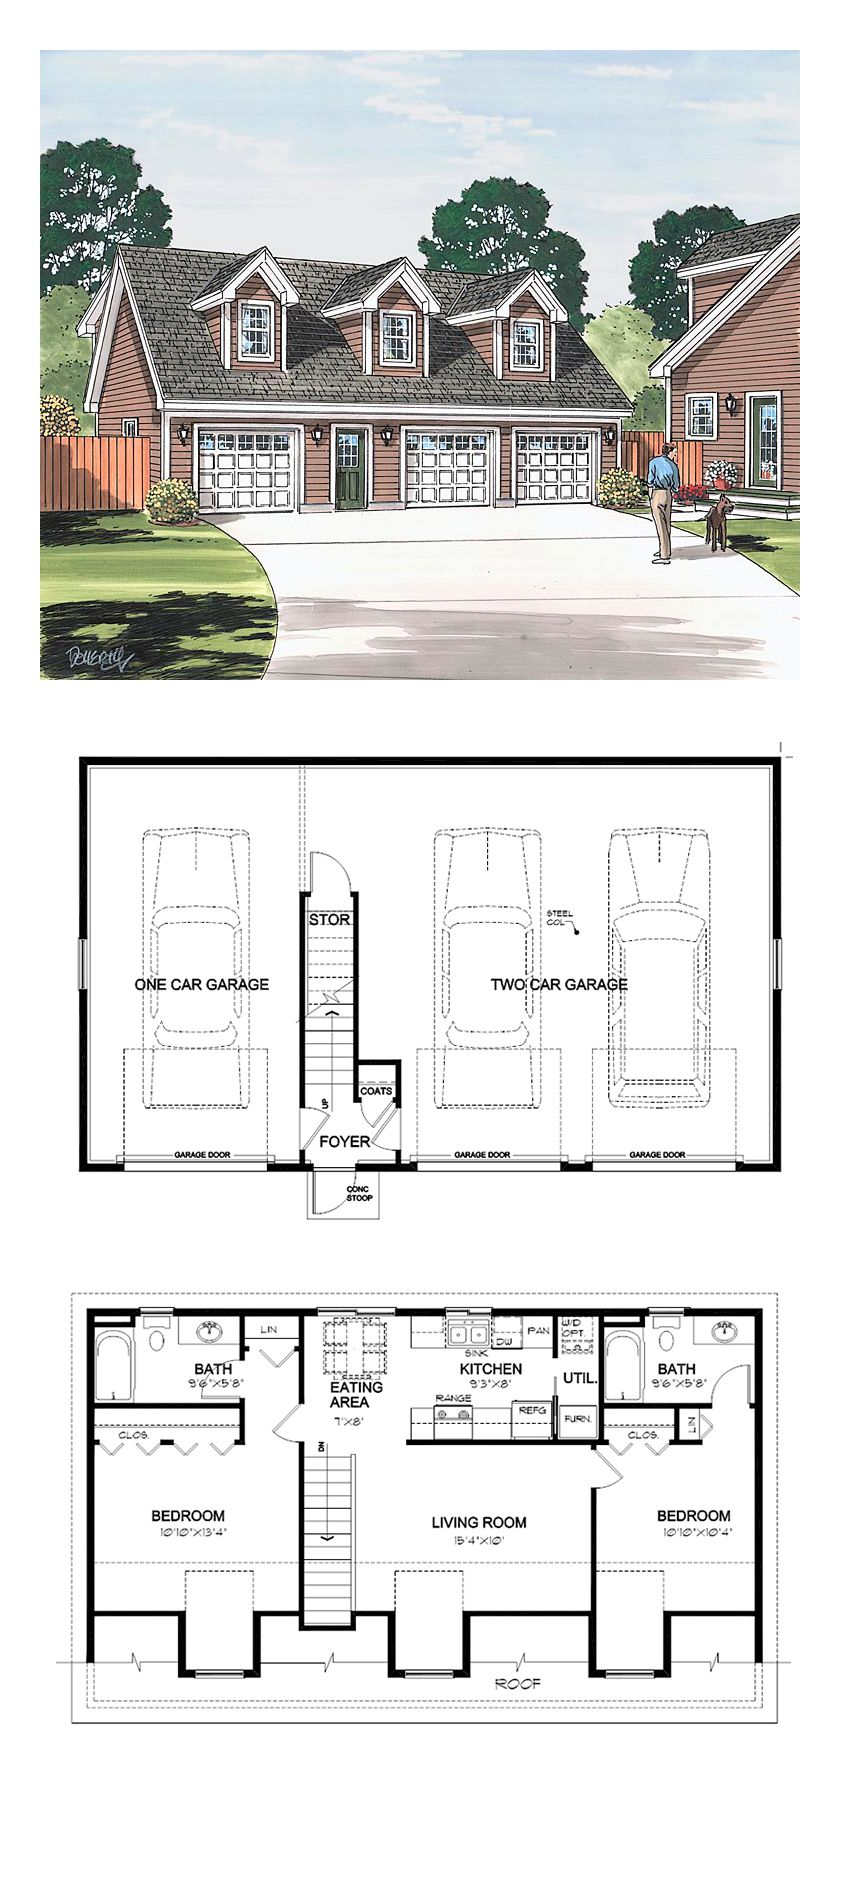 Garage apartment plan 30032 total living area 887 sq 3 bay garage apartment plans